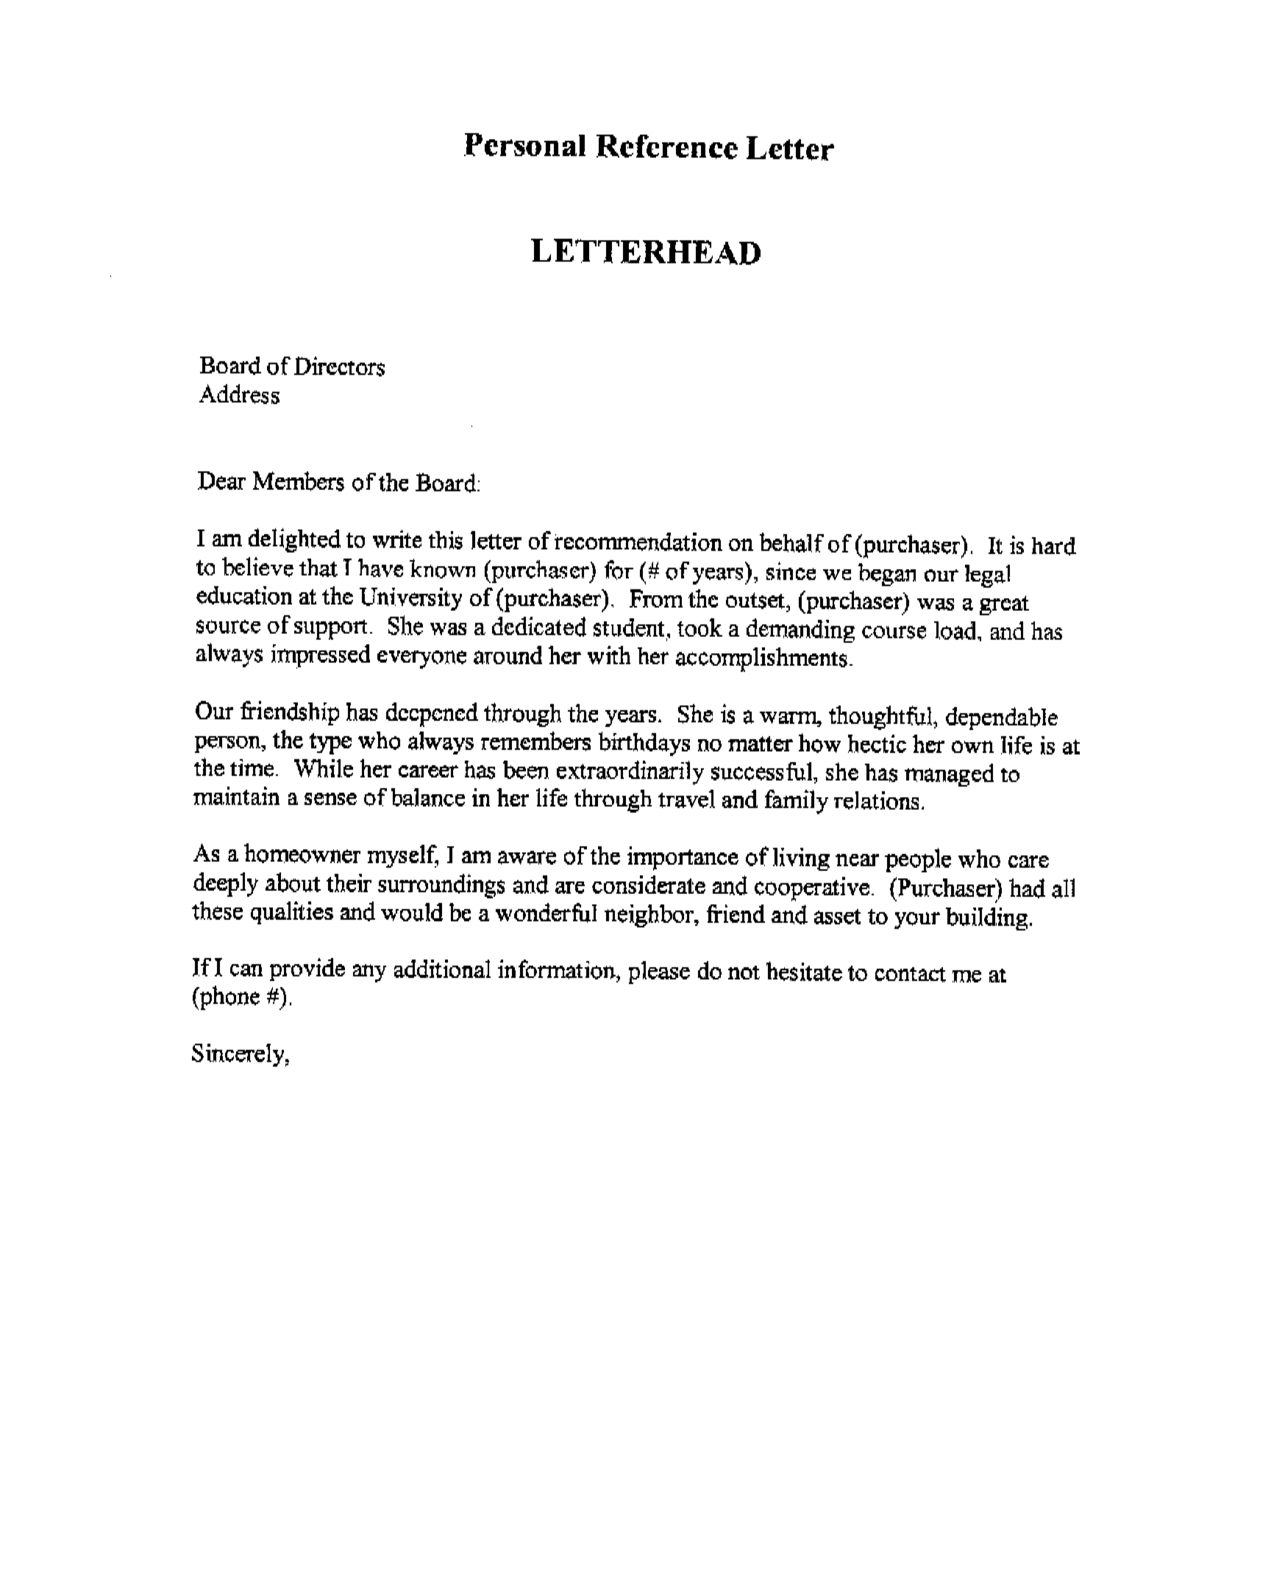 letter of recommendation examples and writing tips a letter professional recommendation letter this is an example of a professional recommendation written for an employee